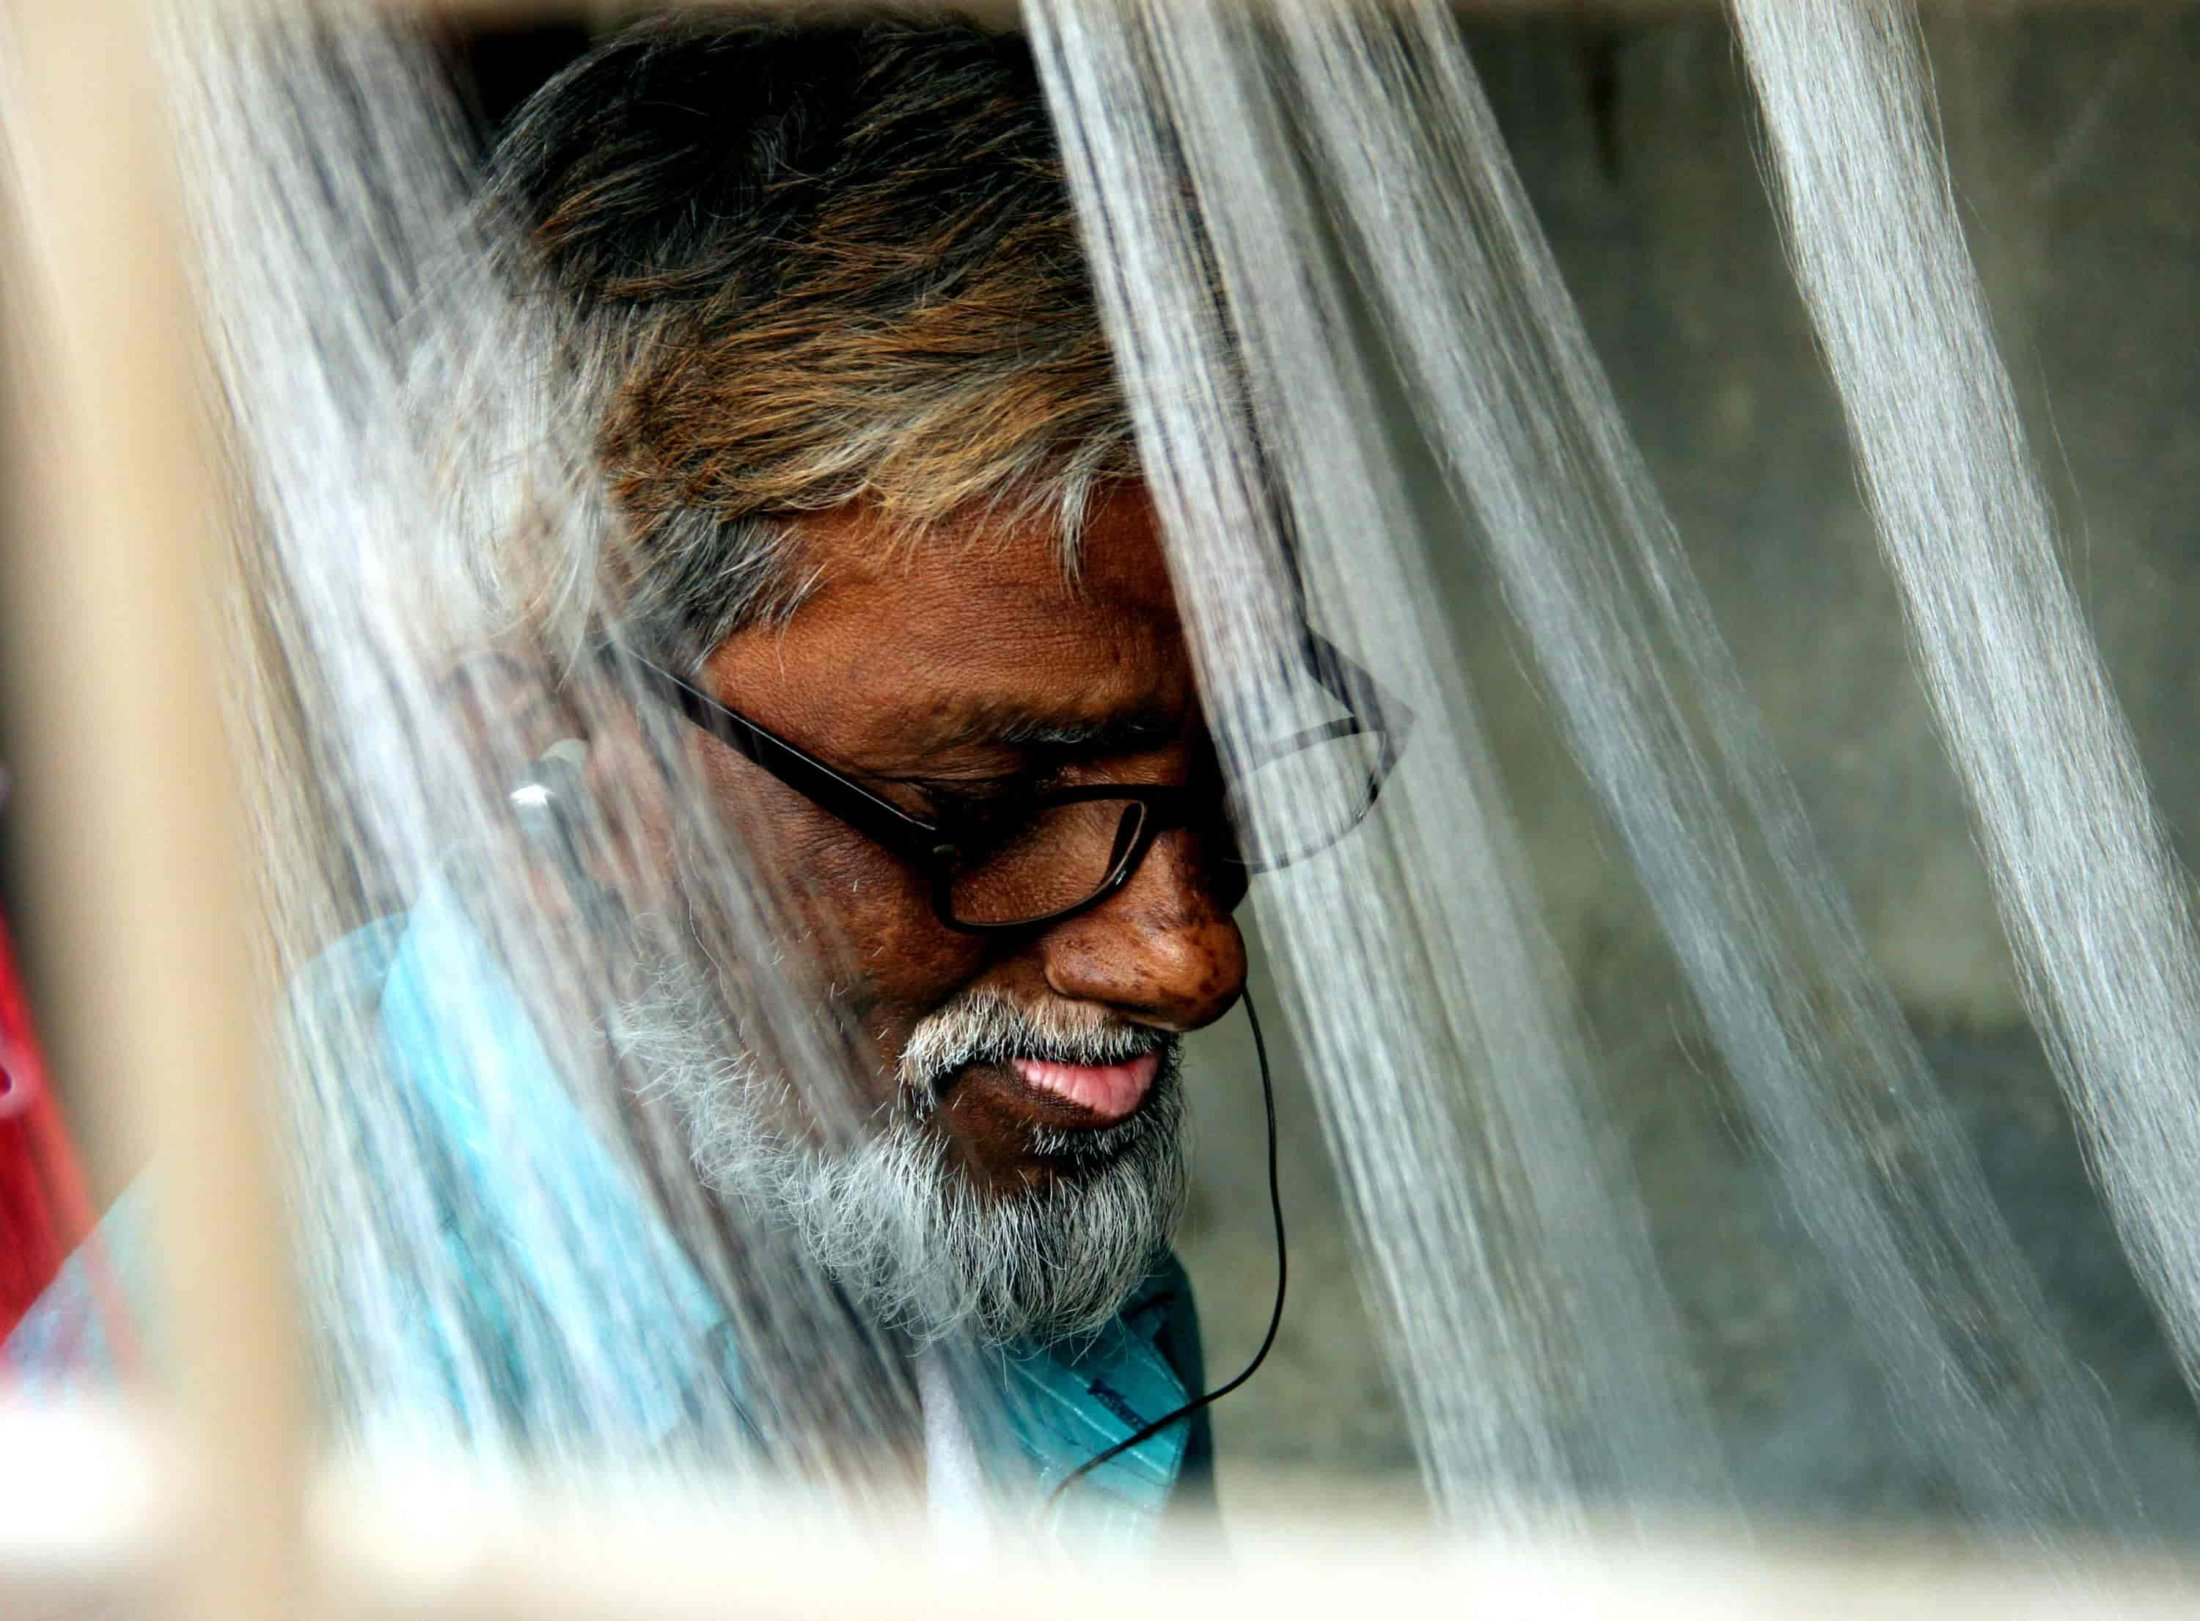 177. A Taanti Concentrating At The Loom-min